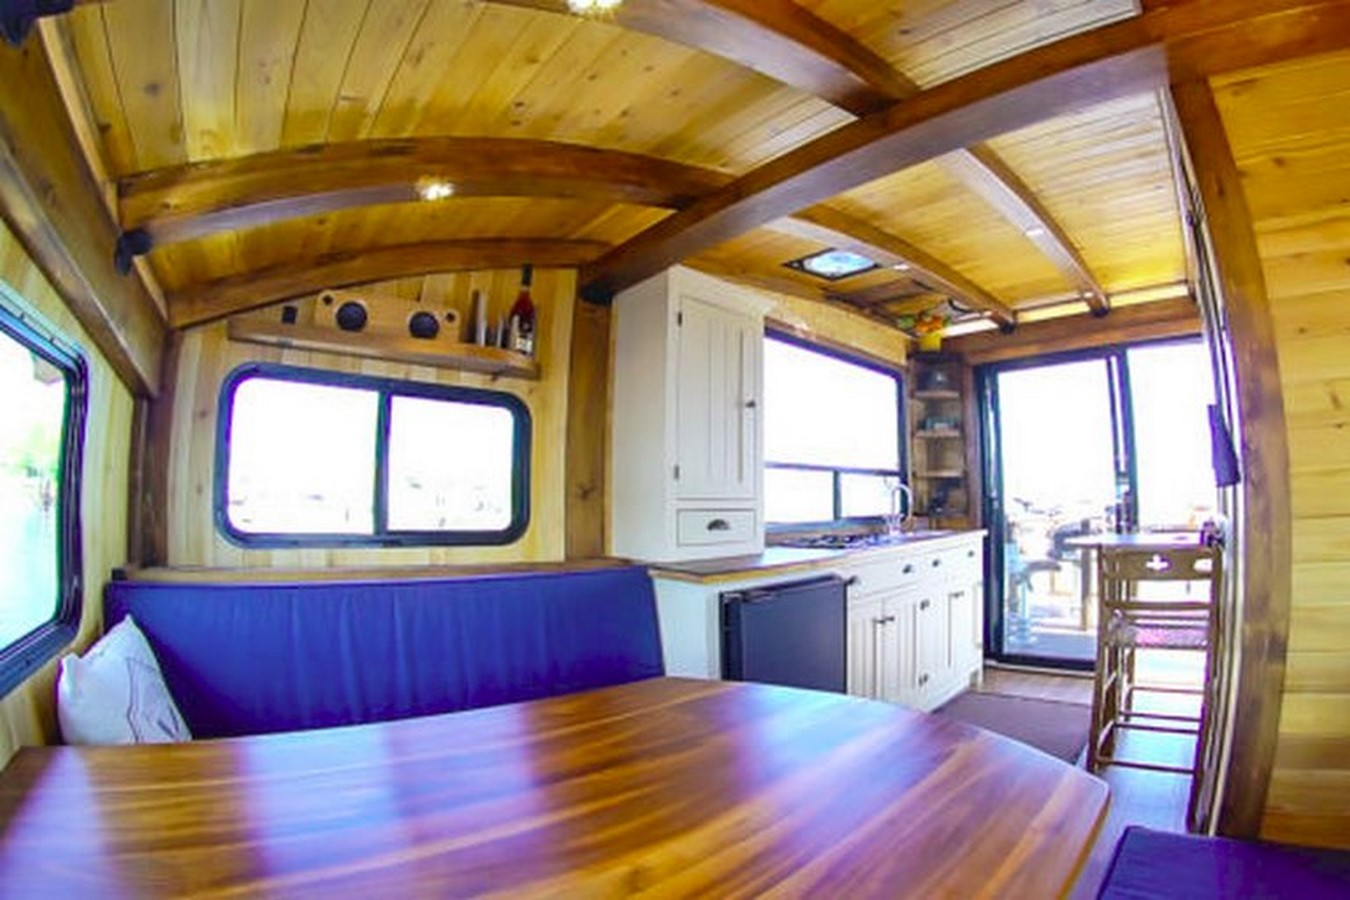 15 Examples of Tiny-home designs - Sheet53